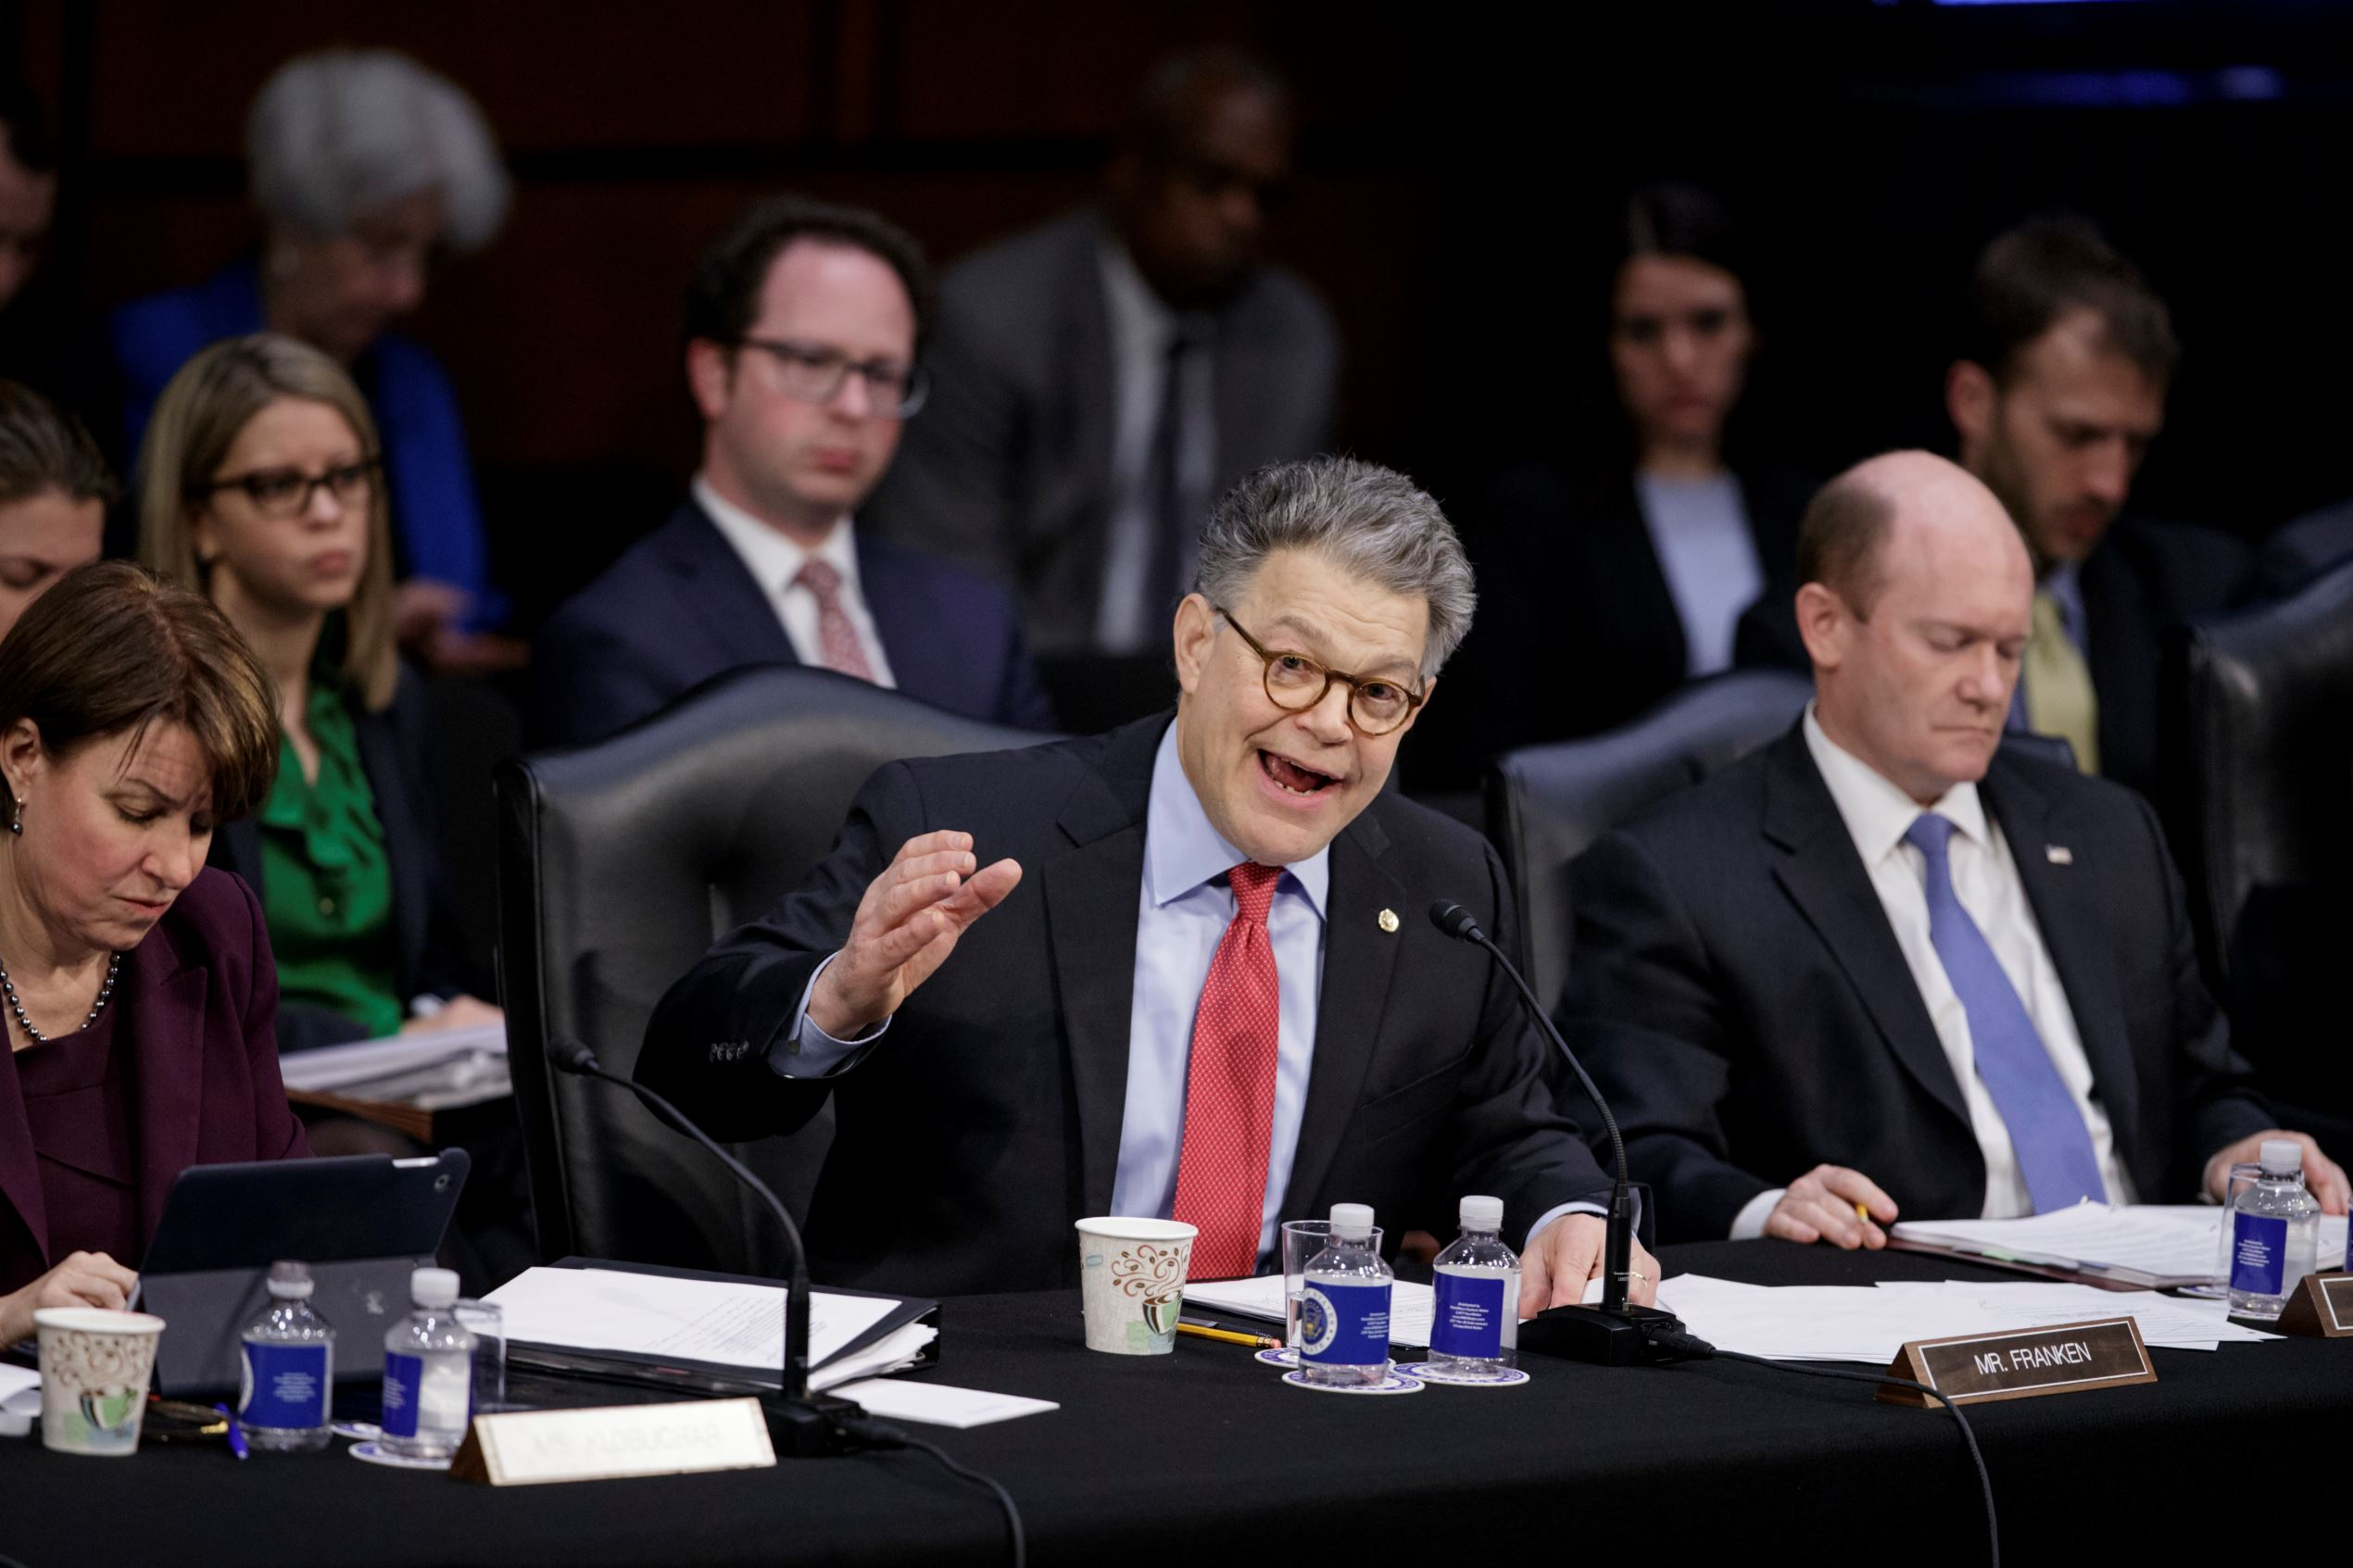 Sen. Al Franken, D-Minn., center, flanked by other Democratic members of the Senate Judiciary Committee, Sen. Amy Klobuchar, D-Minn., left, and Sen. Chris Coons, D-Del., question the Republican side as the panel meets to advance the nomination of President Donald Trump's Supreme Court nominee Neil Gorsuch, Monday, April 3, 2017, on Capitol Hill in Washington.